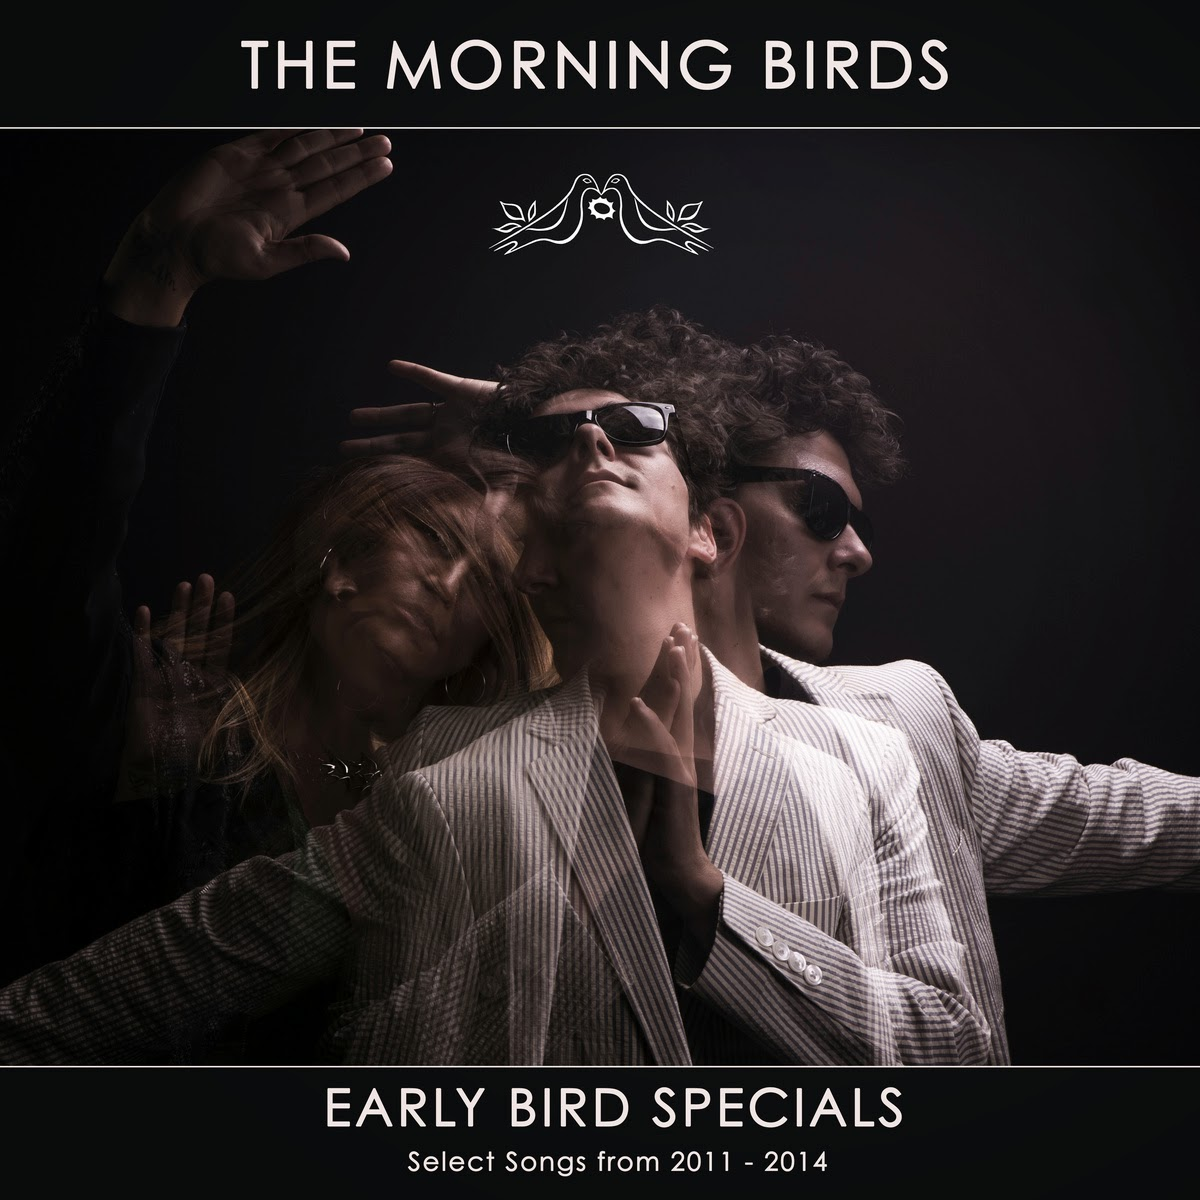 http://www.d4am.net/2015/04/the-morning-birds-early-bird-specials.html